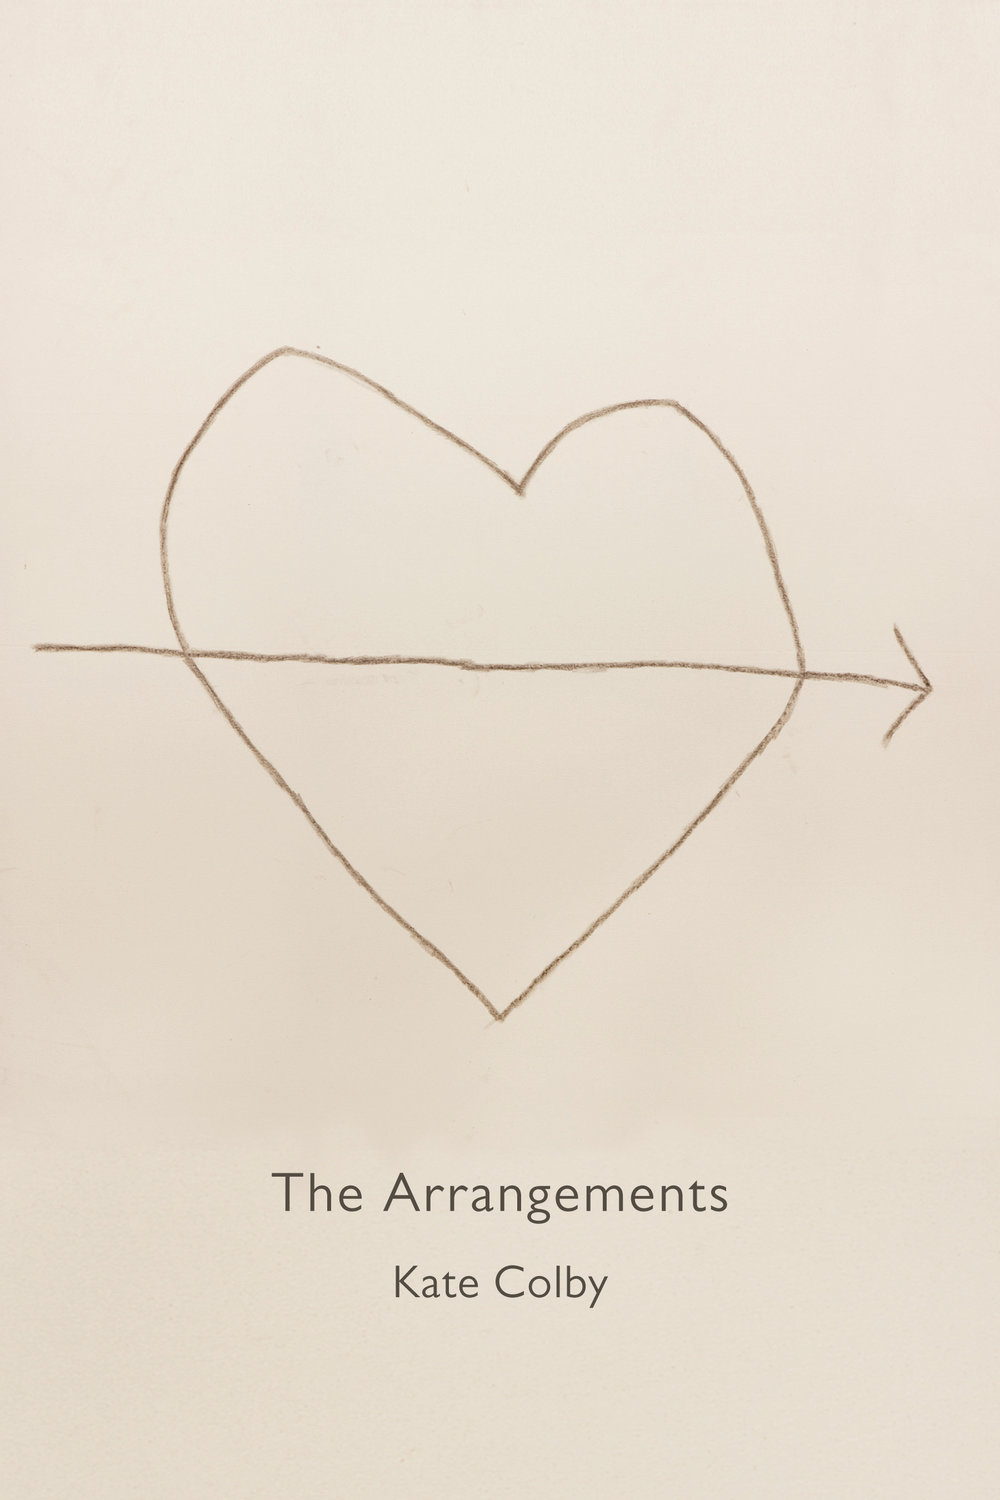 The-Arrangements_Colby-front-cover.jpg